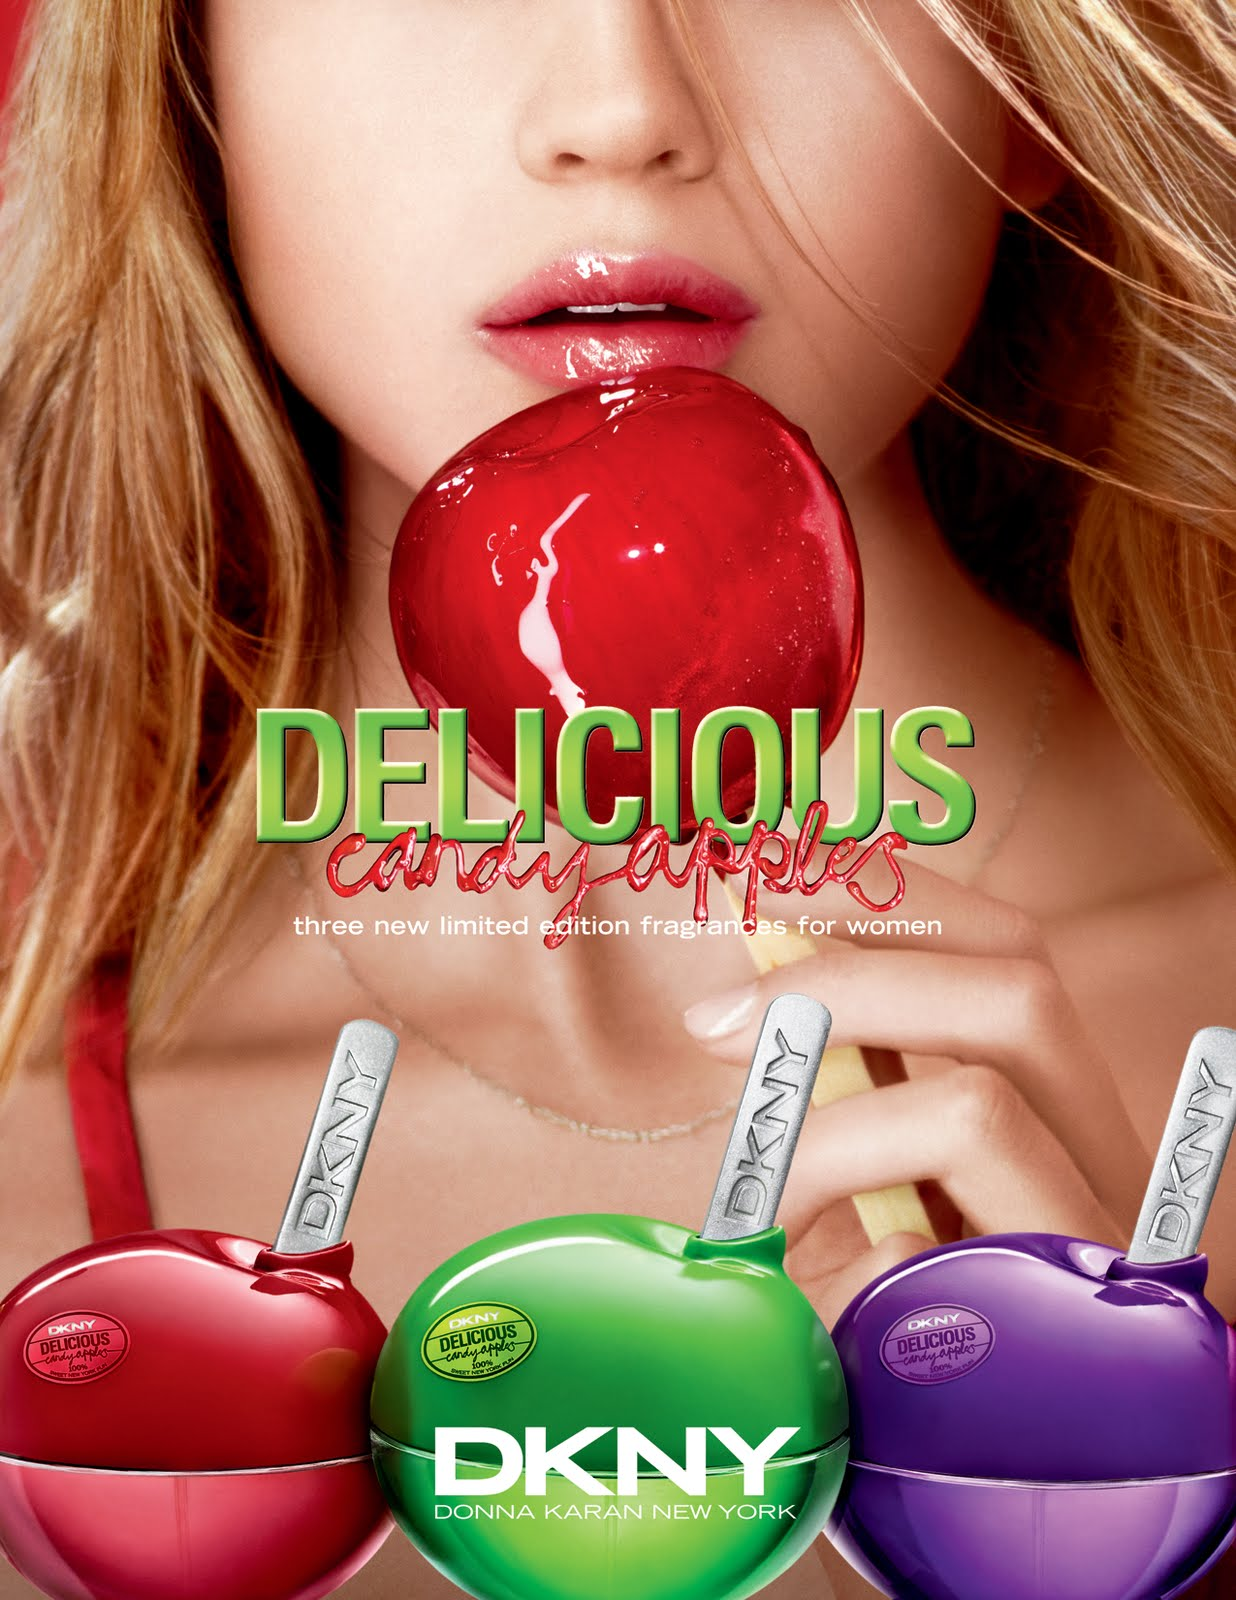 The Uncurated Life: DKNY Delicious Candy Apples